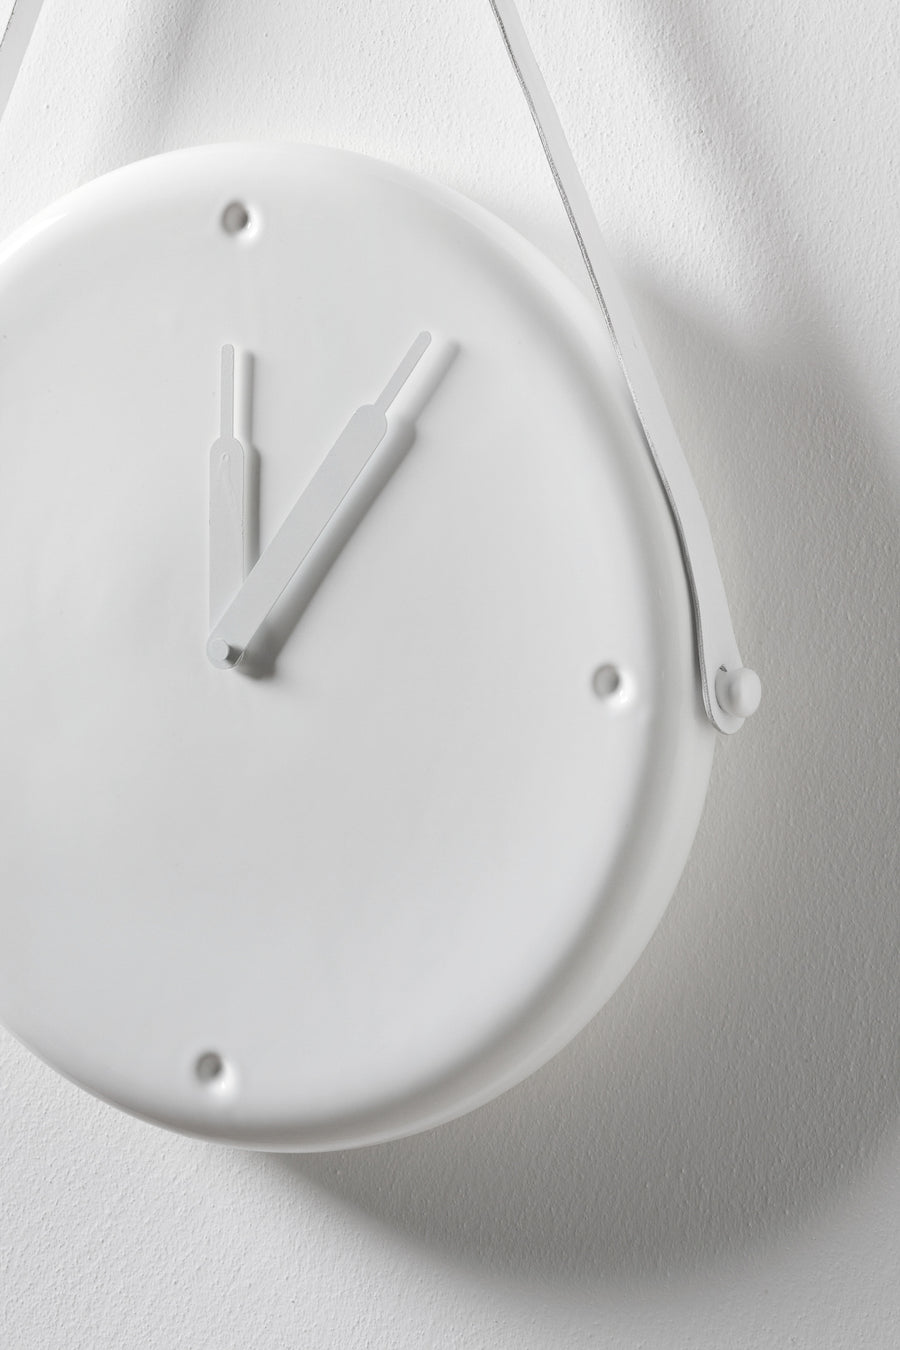 HORAMUR Wall Clock by Jaime Hayon for Bosa - DUPLEX DESIGN